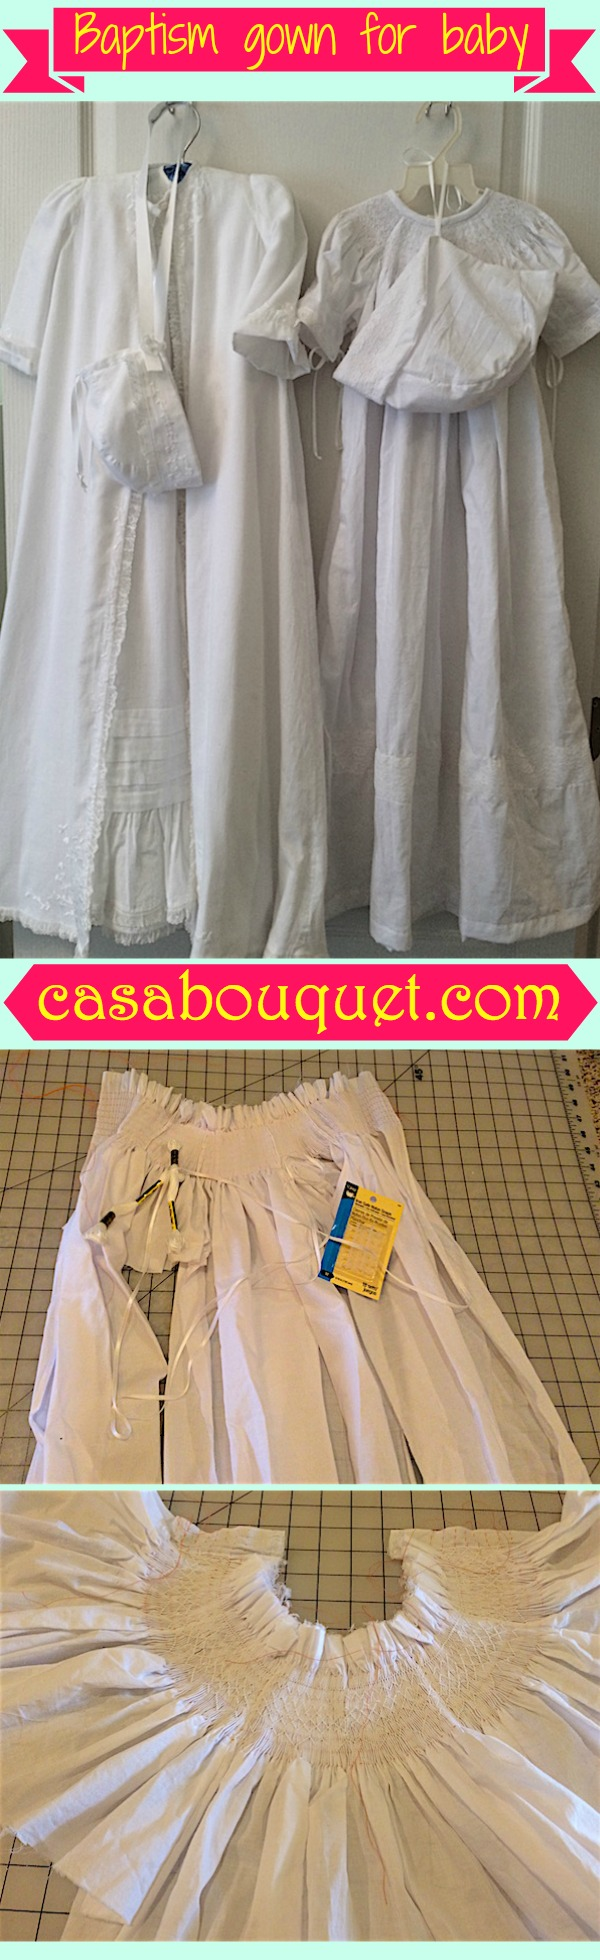 A baptism gown for a baby makes a baptism or christening extra special. Smocking an heirloom bishop style is loose fitting.